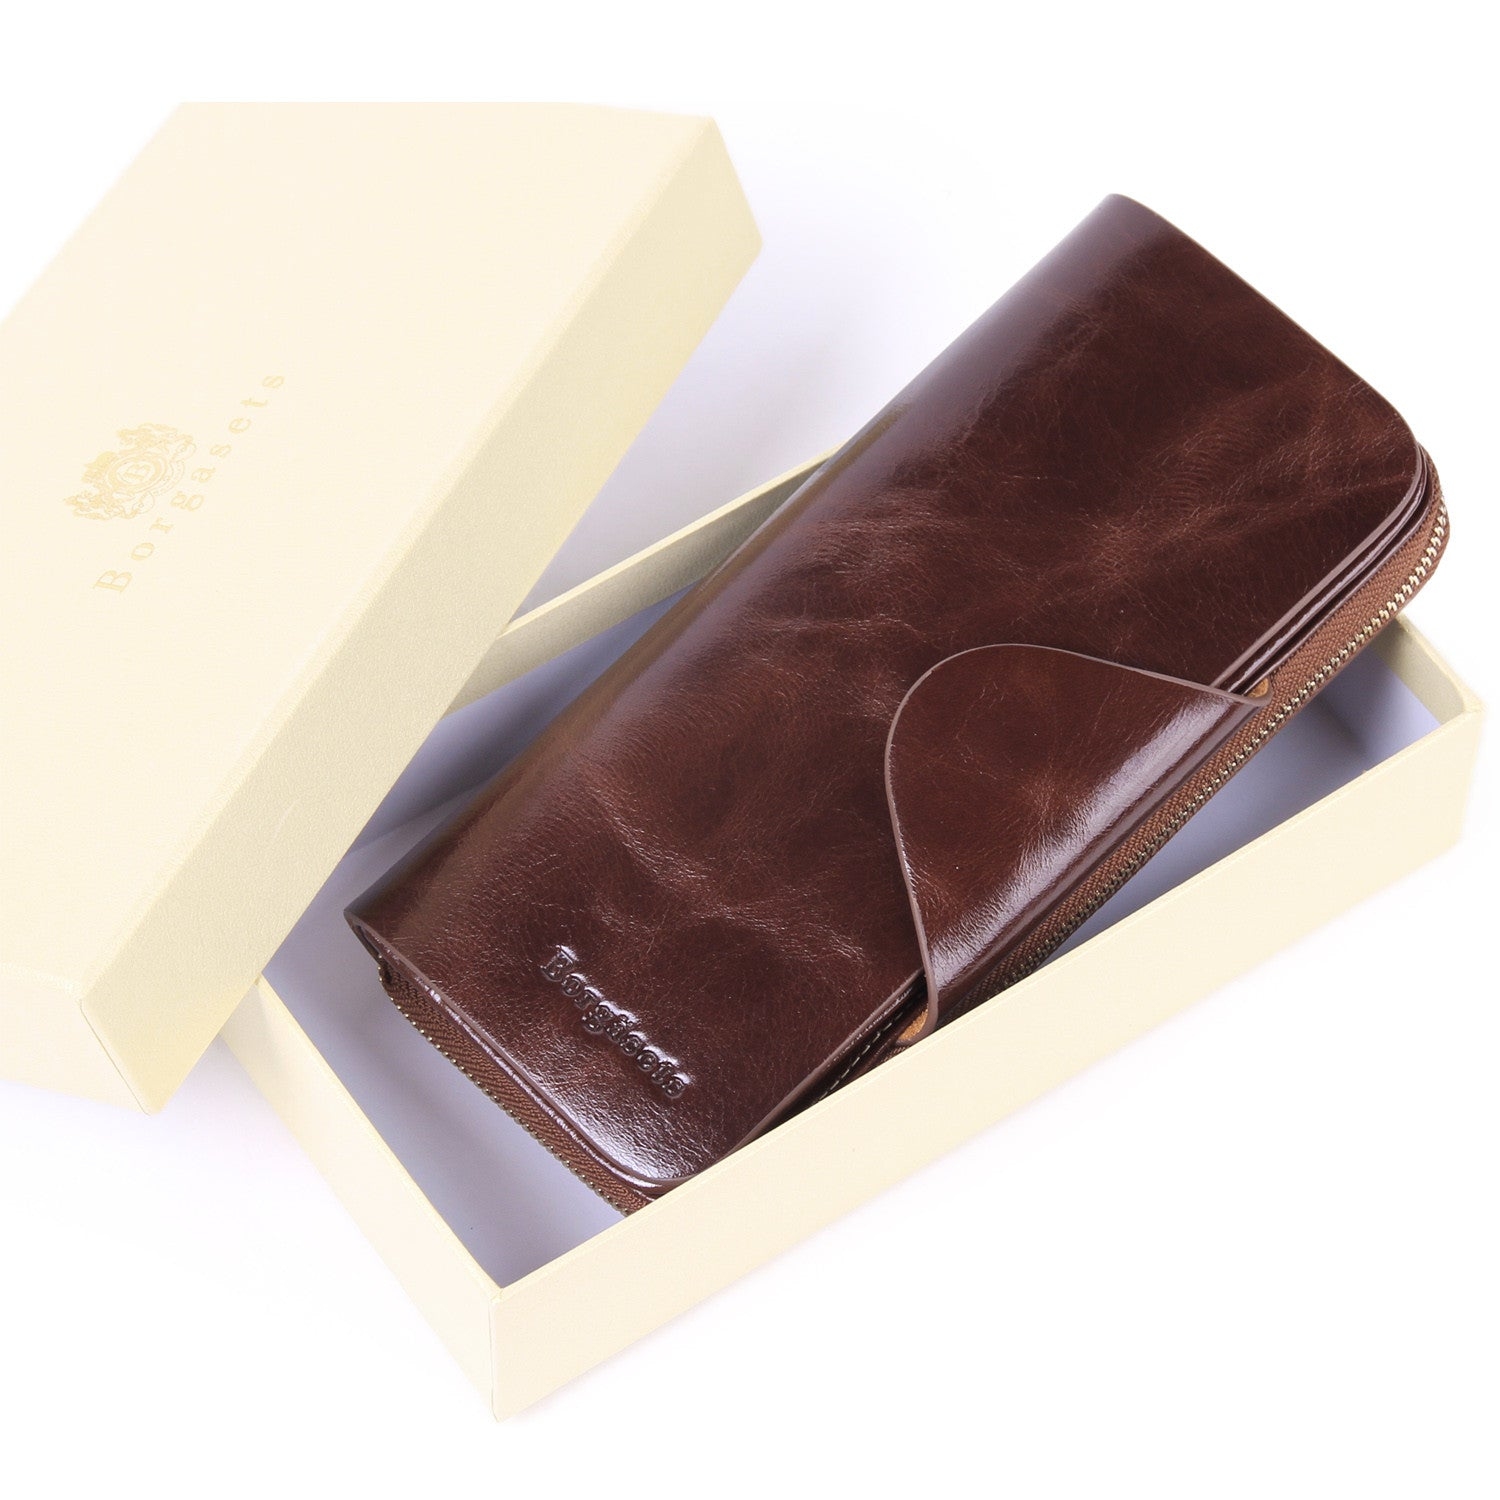 Grande Women's RFID Blocking Wallet Zip Trifold Leather Purse Clutch Coffee - Borgasets